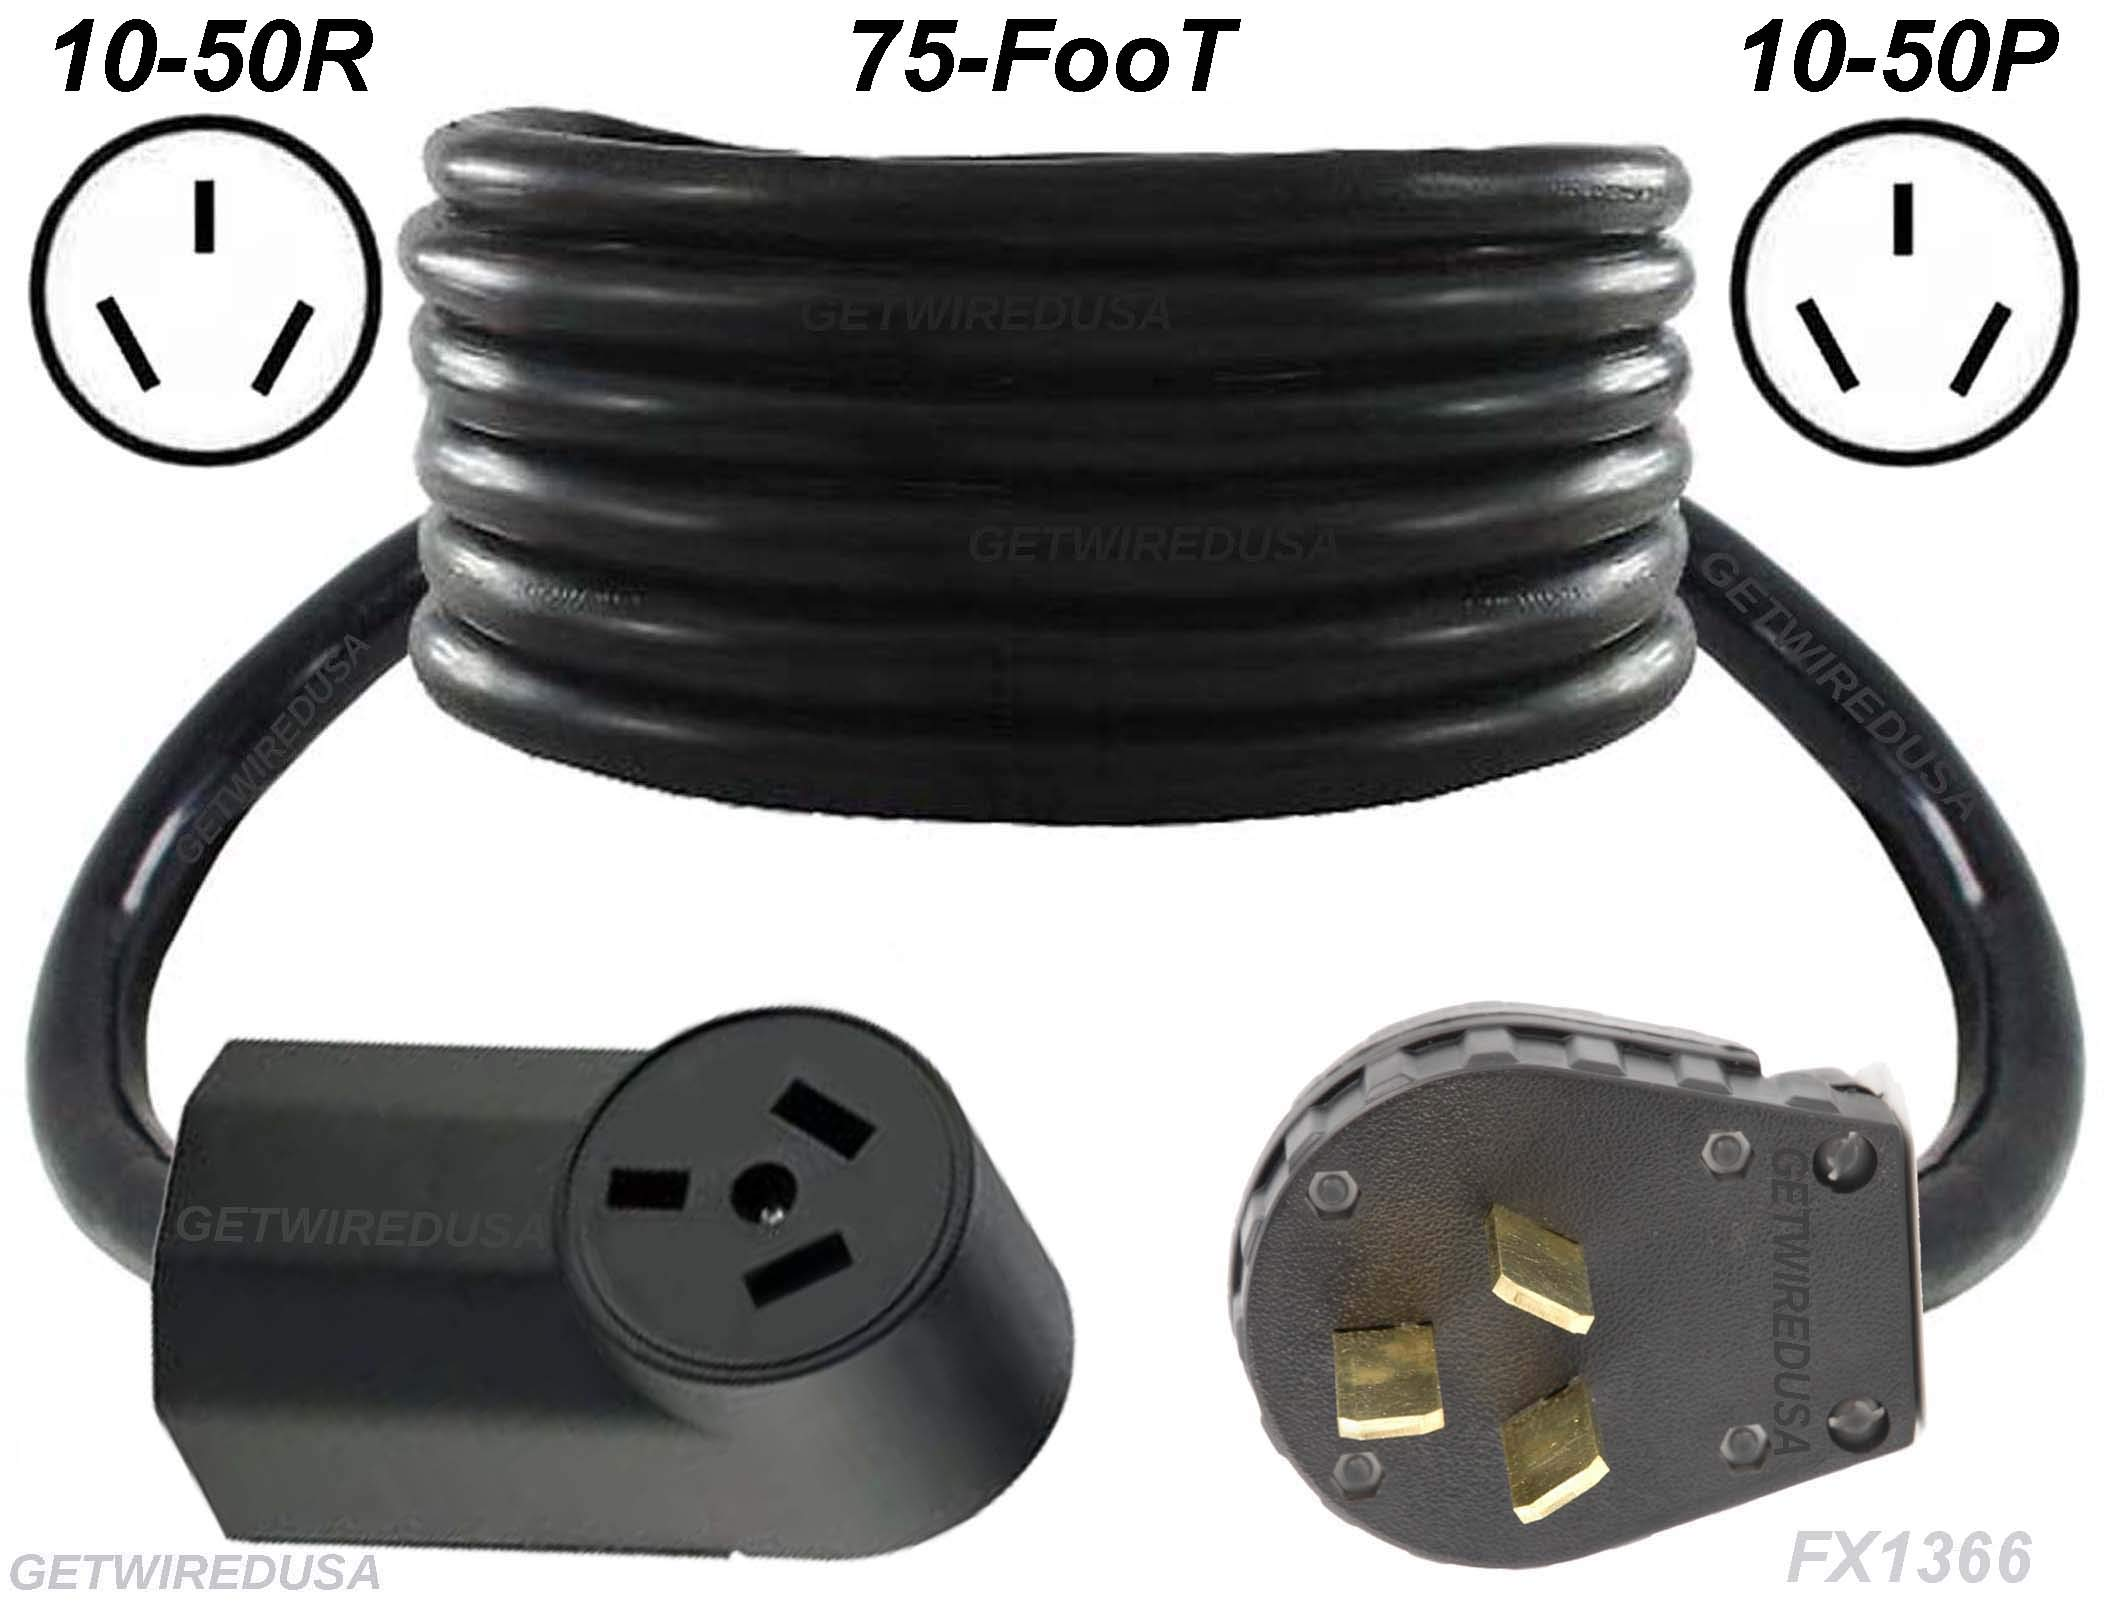 Range, Stove, Oven, 75-FT Extension Cord 10-50P Male 3-Pin Plug To 10-50R Female Receptacle, Heavy Duty, Real Copper Wire, 10/3 10AWG 10-Gauge, NEMA, 75-Feet Long, Made In American, FX1366-R by getwiredusa